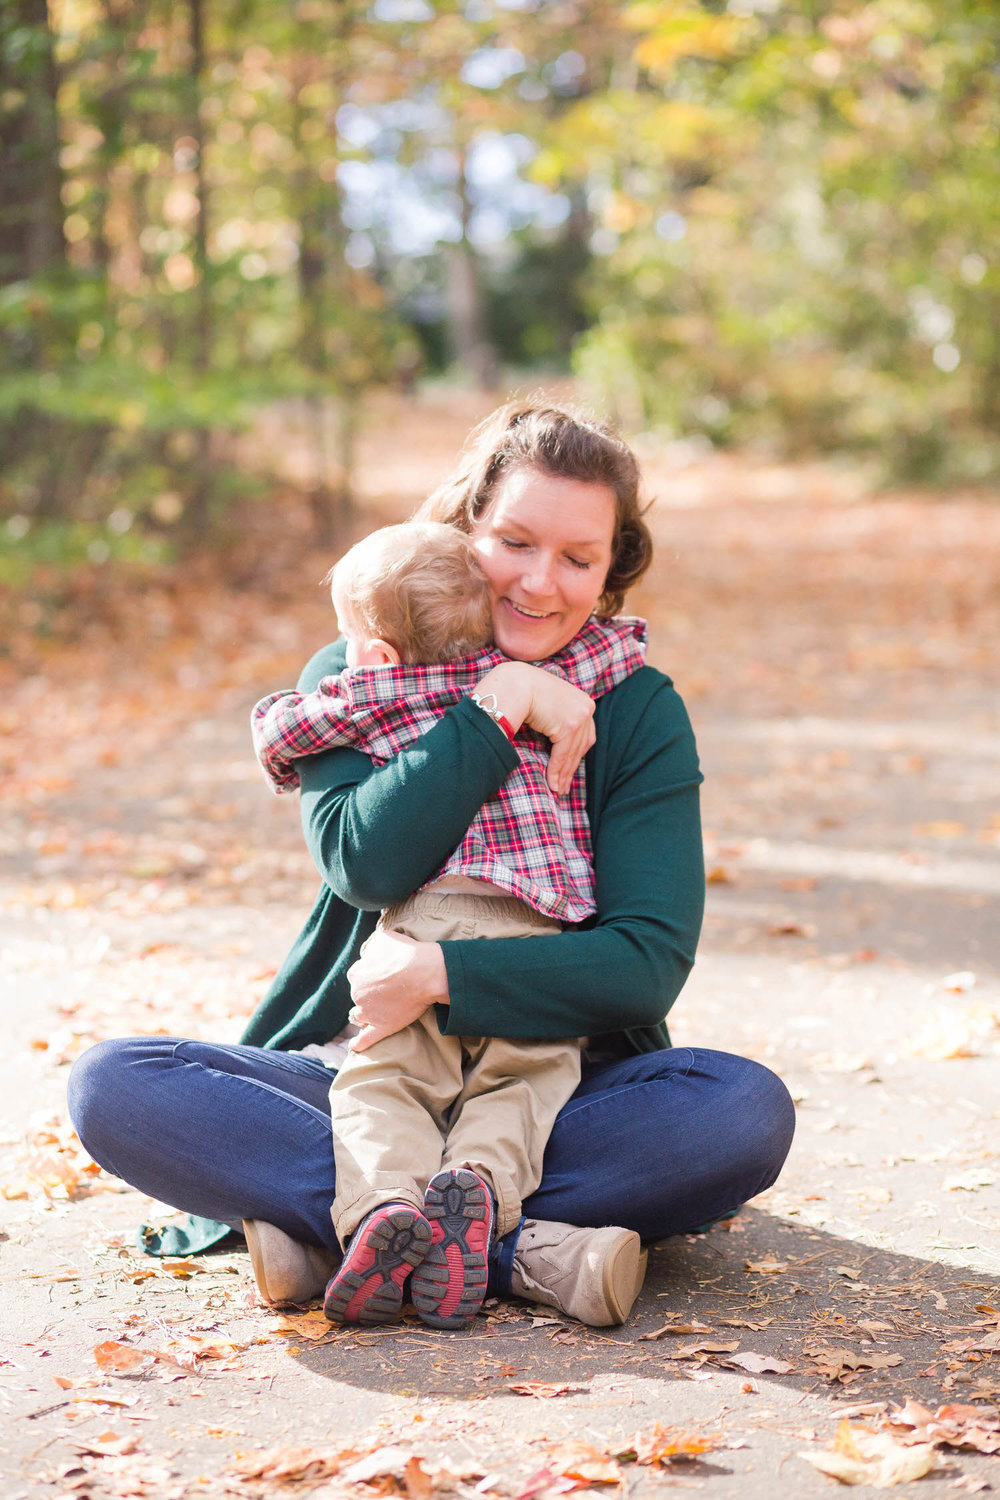 Ashley-AMBER-Photo-Greenville-Family-Photographer-161106-2.jpg